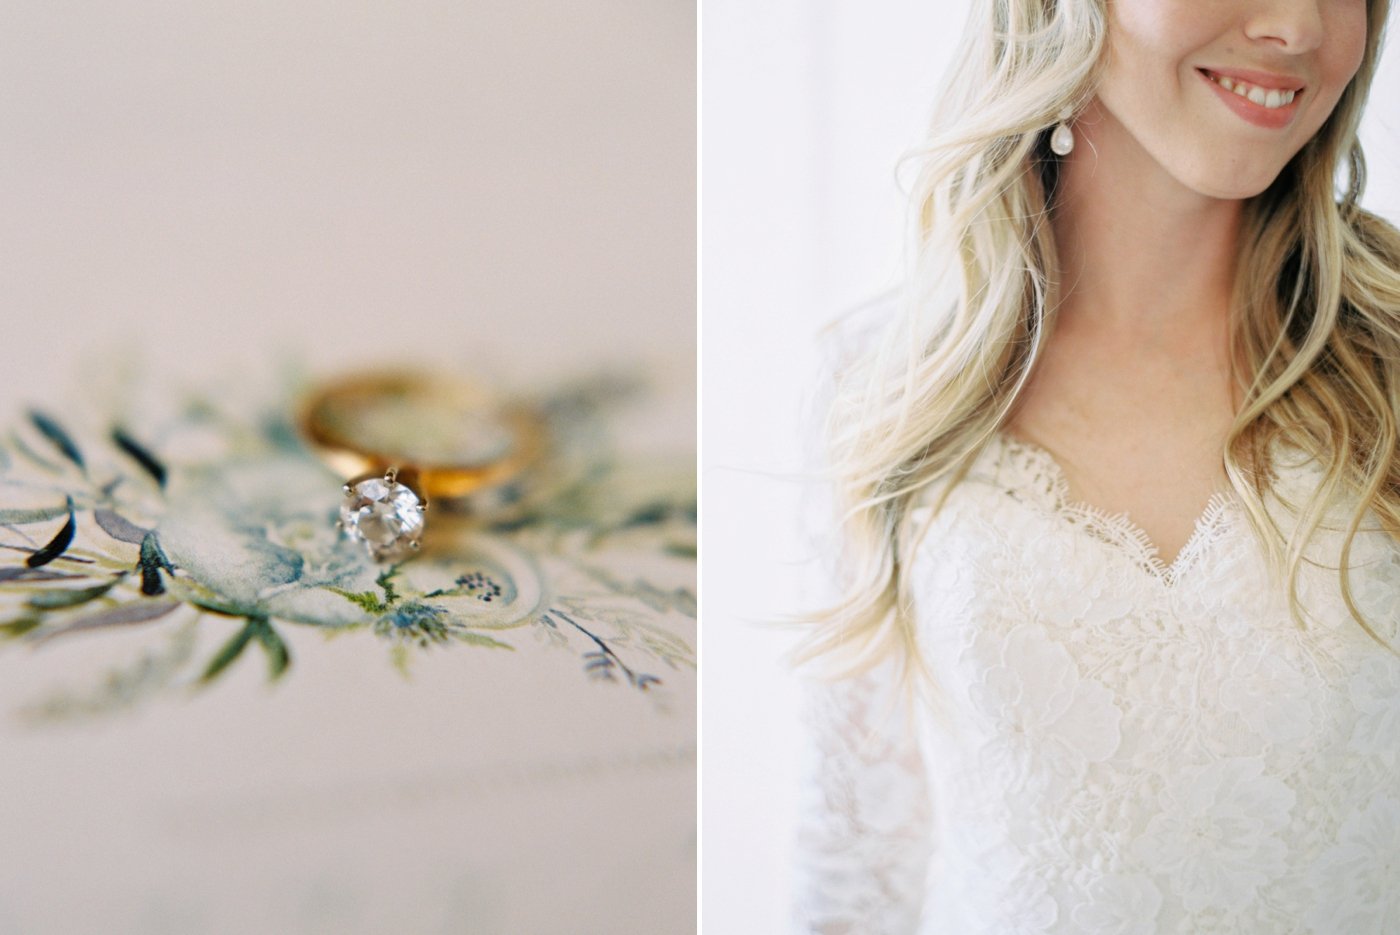 Calgary wedding photographers | The Gathered Farm Wedding | Justine milton fine art film photographer | bride getting ready details diamond engagement ring